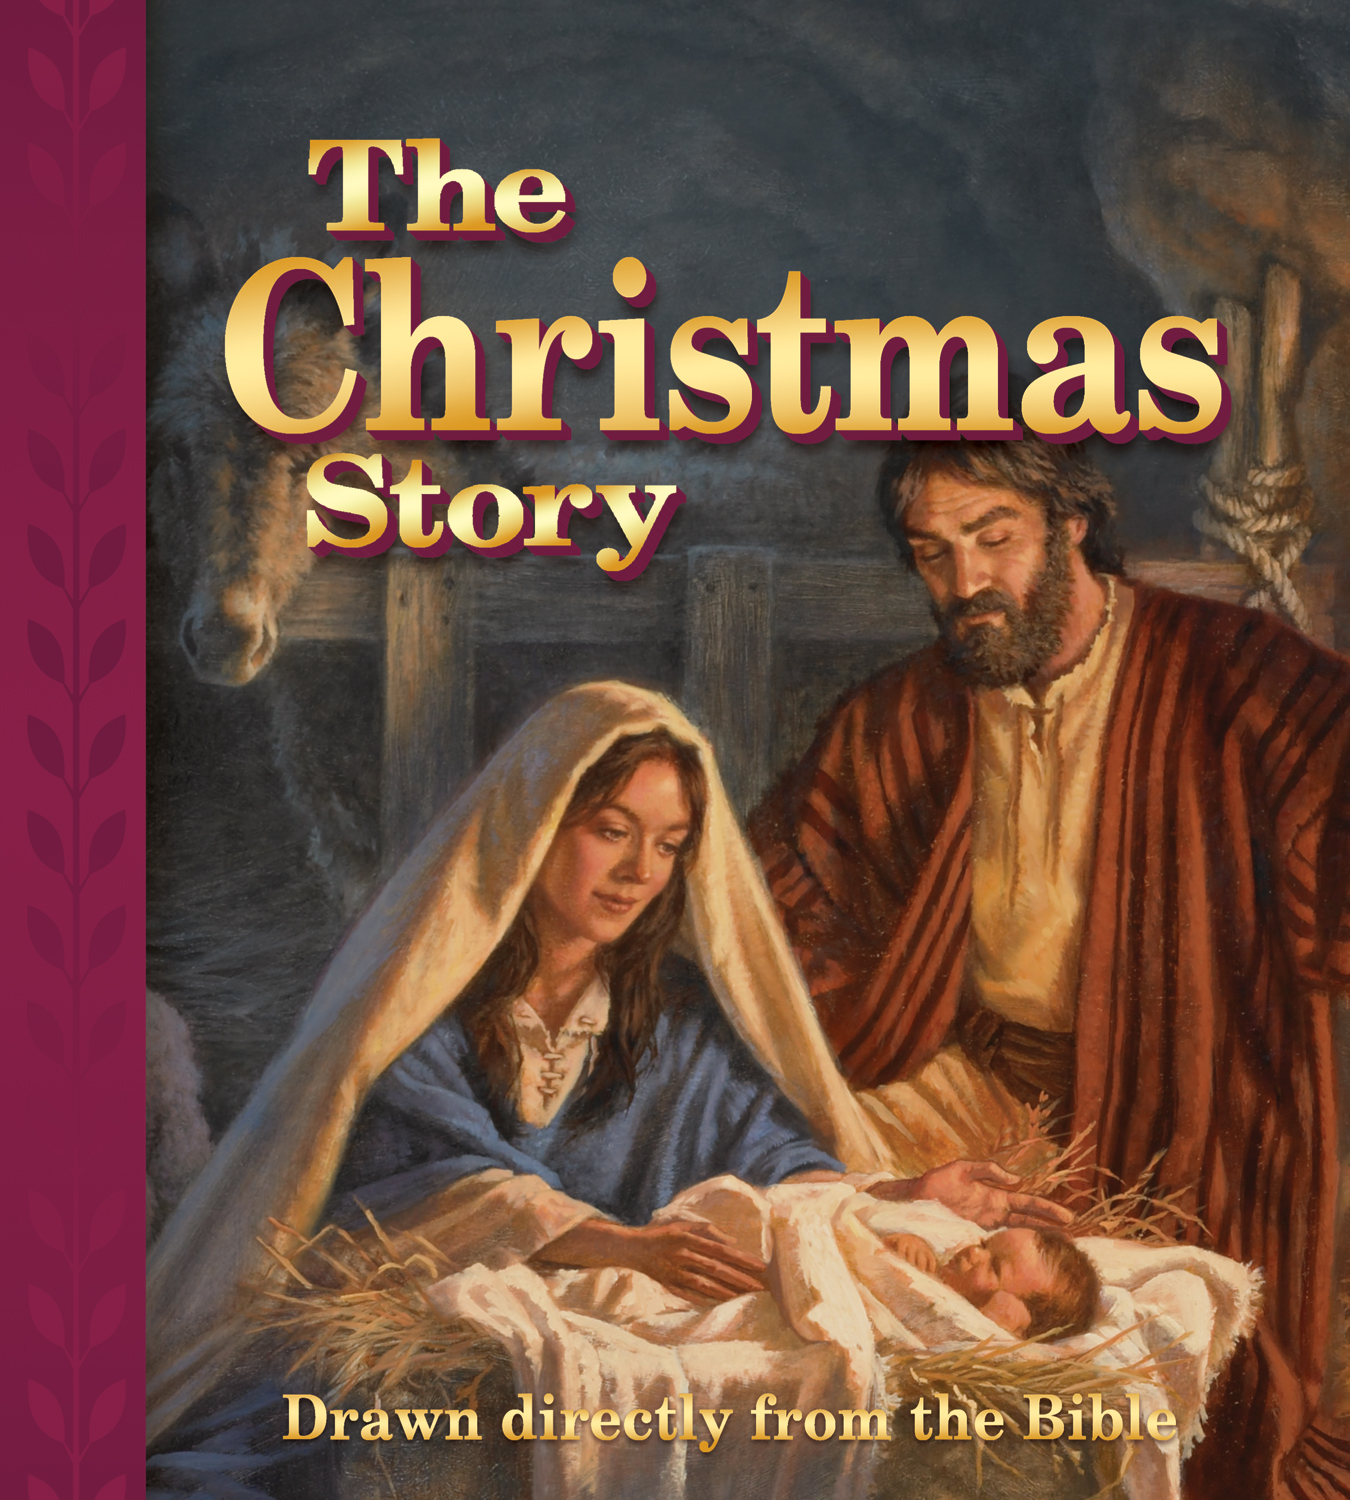 The Christmas Story Bible.The Christmas Story Drawn Directly From The Bible